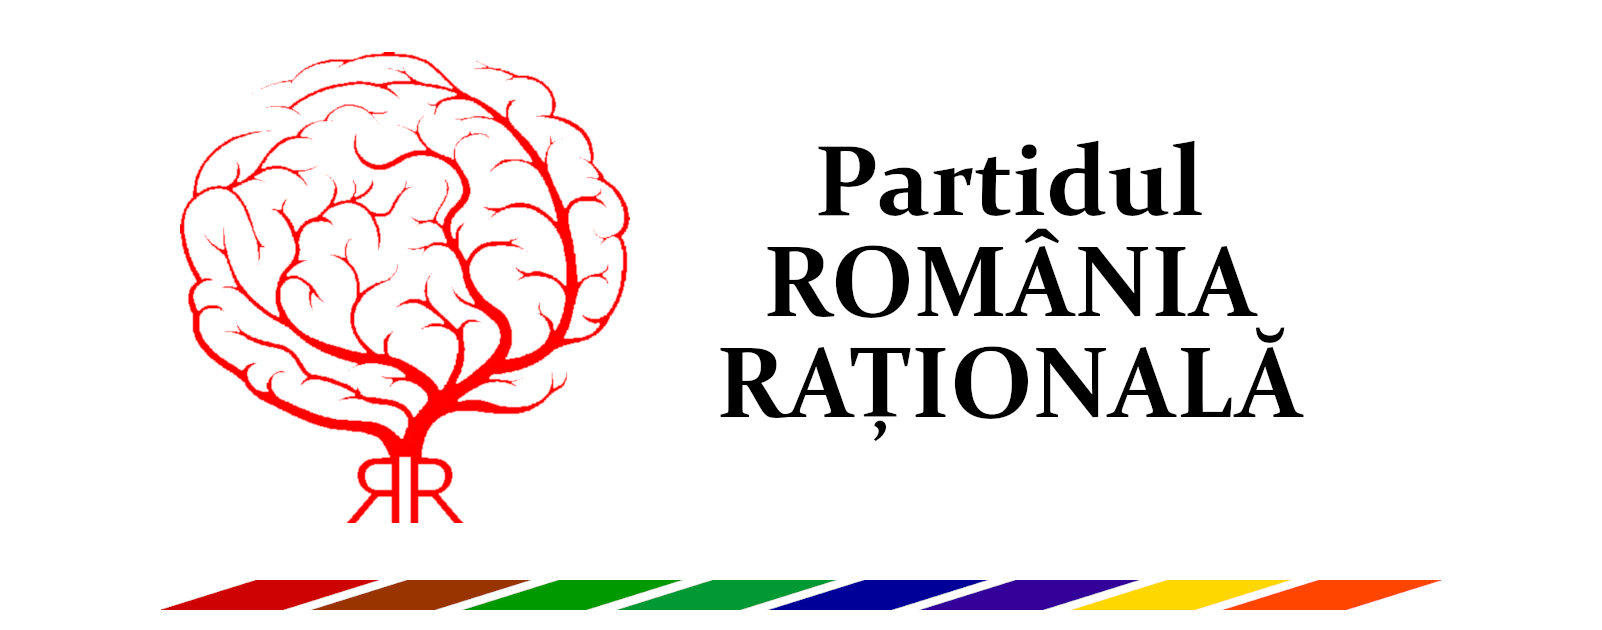 https://ziarul.romania-rationala.ro/control/articole/articole/partidul-romania-rationala-cover-1602x630_2.png